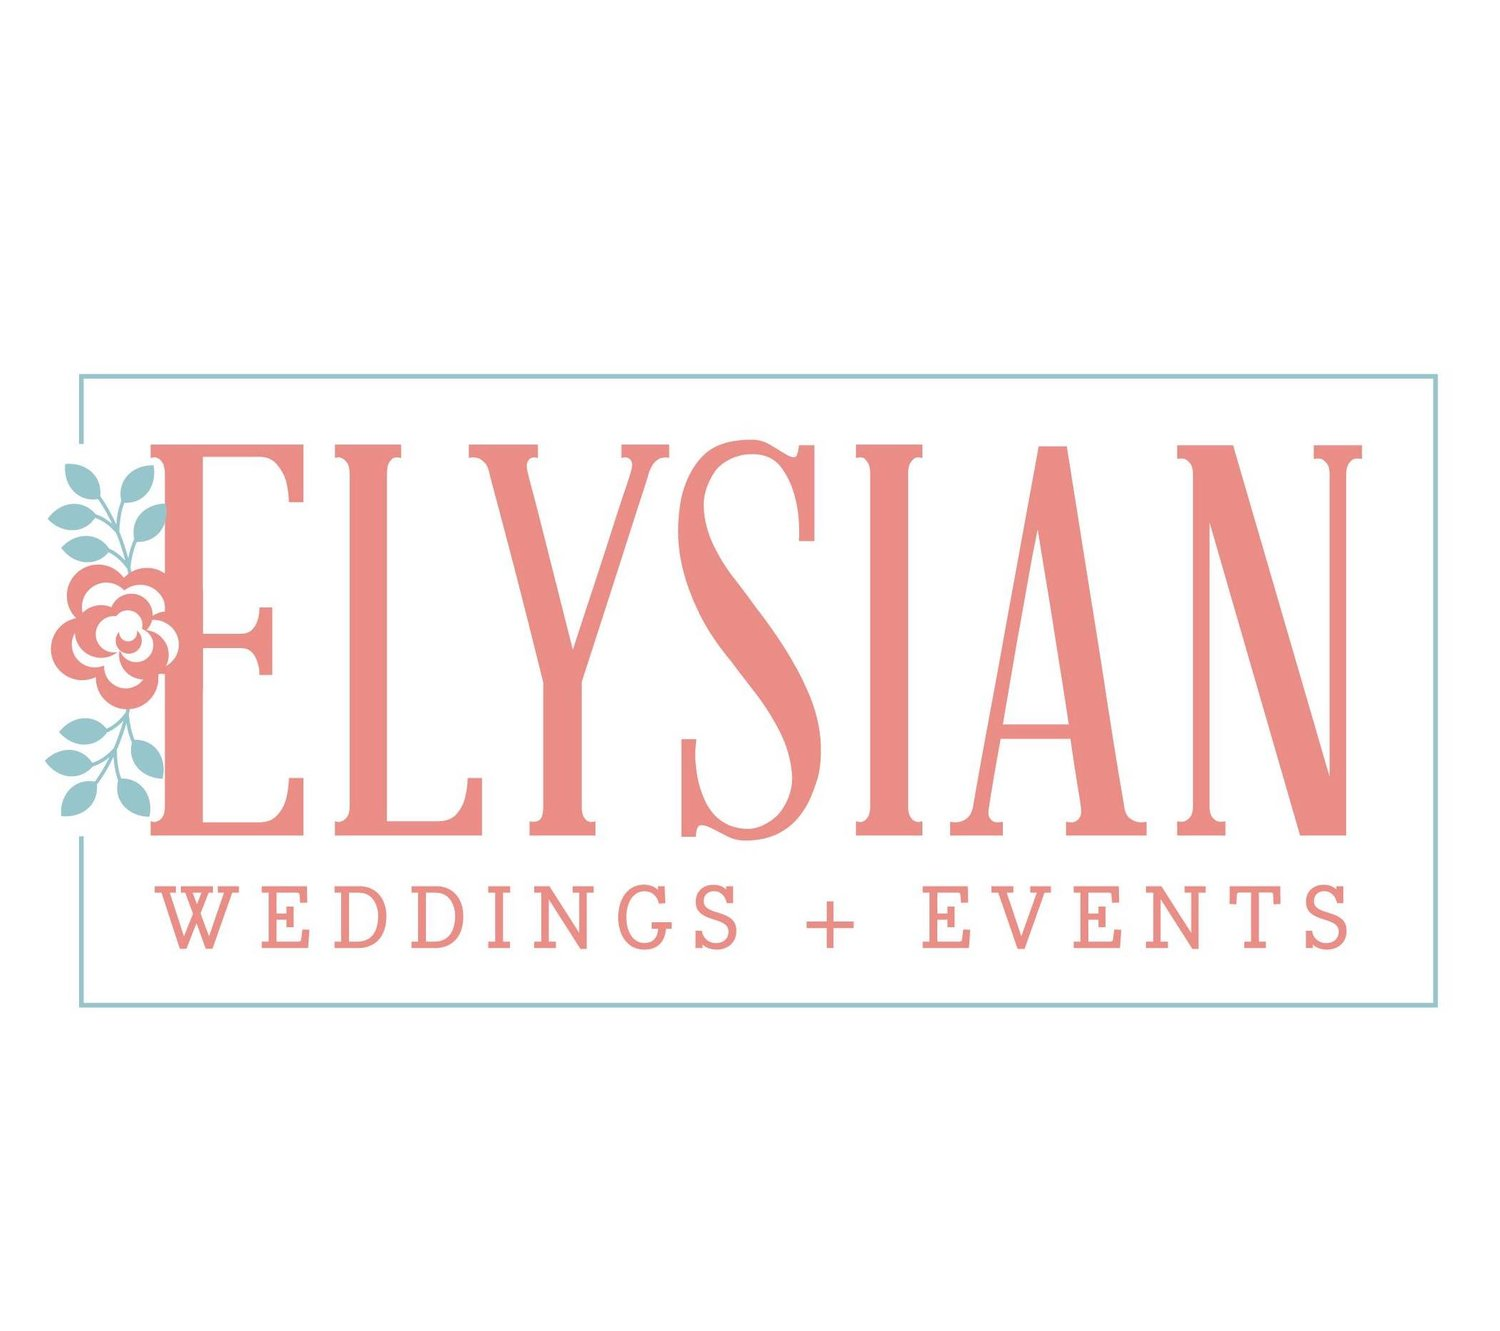 Elysian Weddings & Events